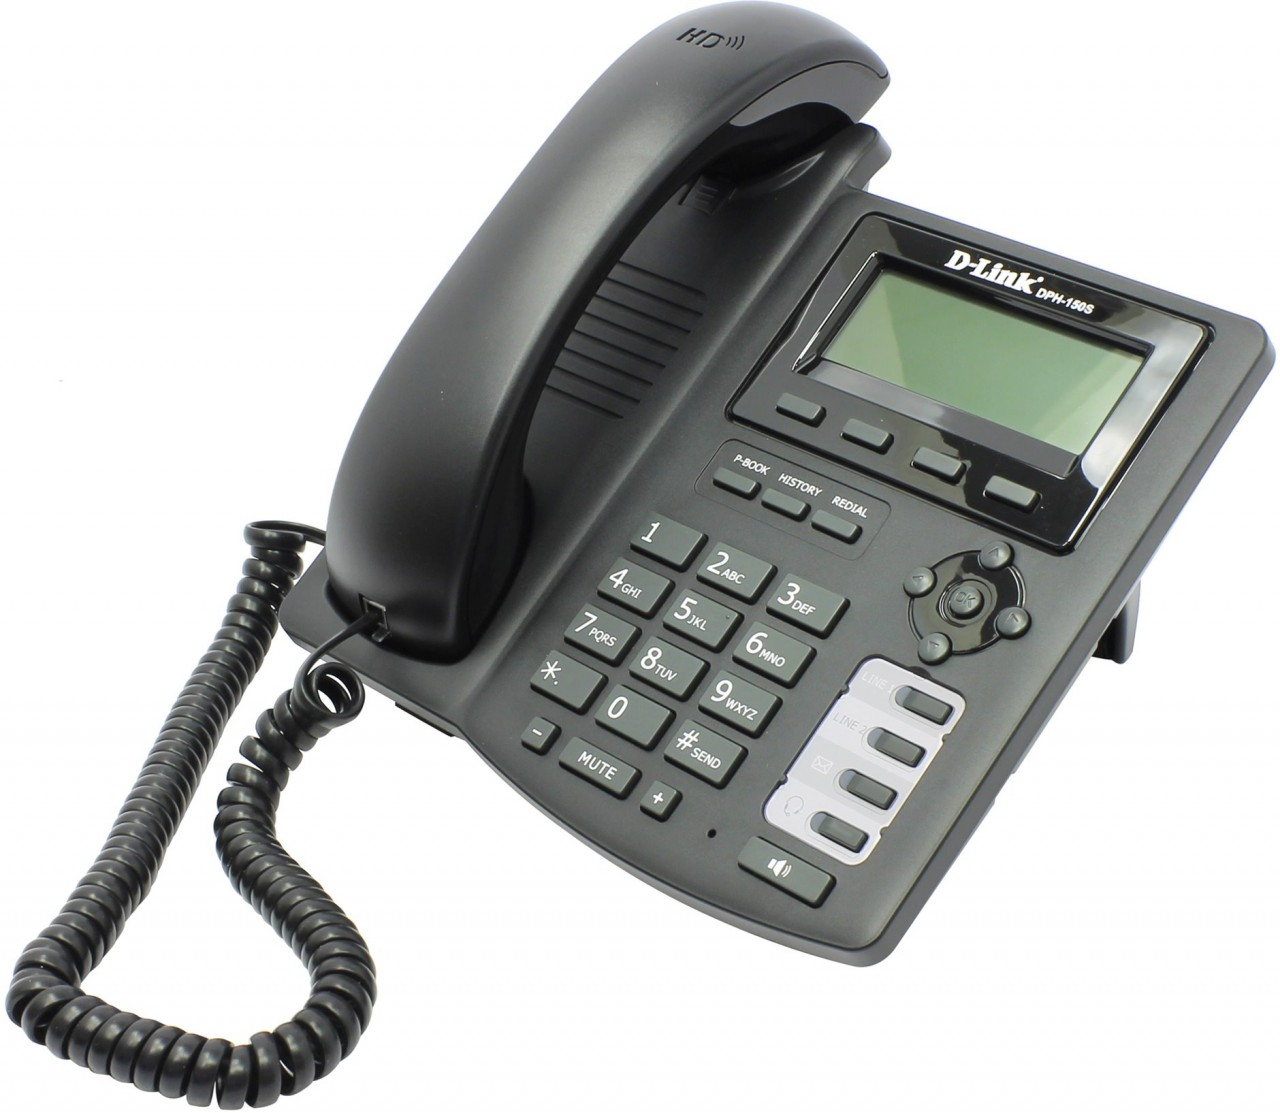 D link sip ip phone dph 150se f4 price in pakistan for Sips price